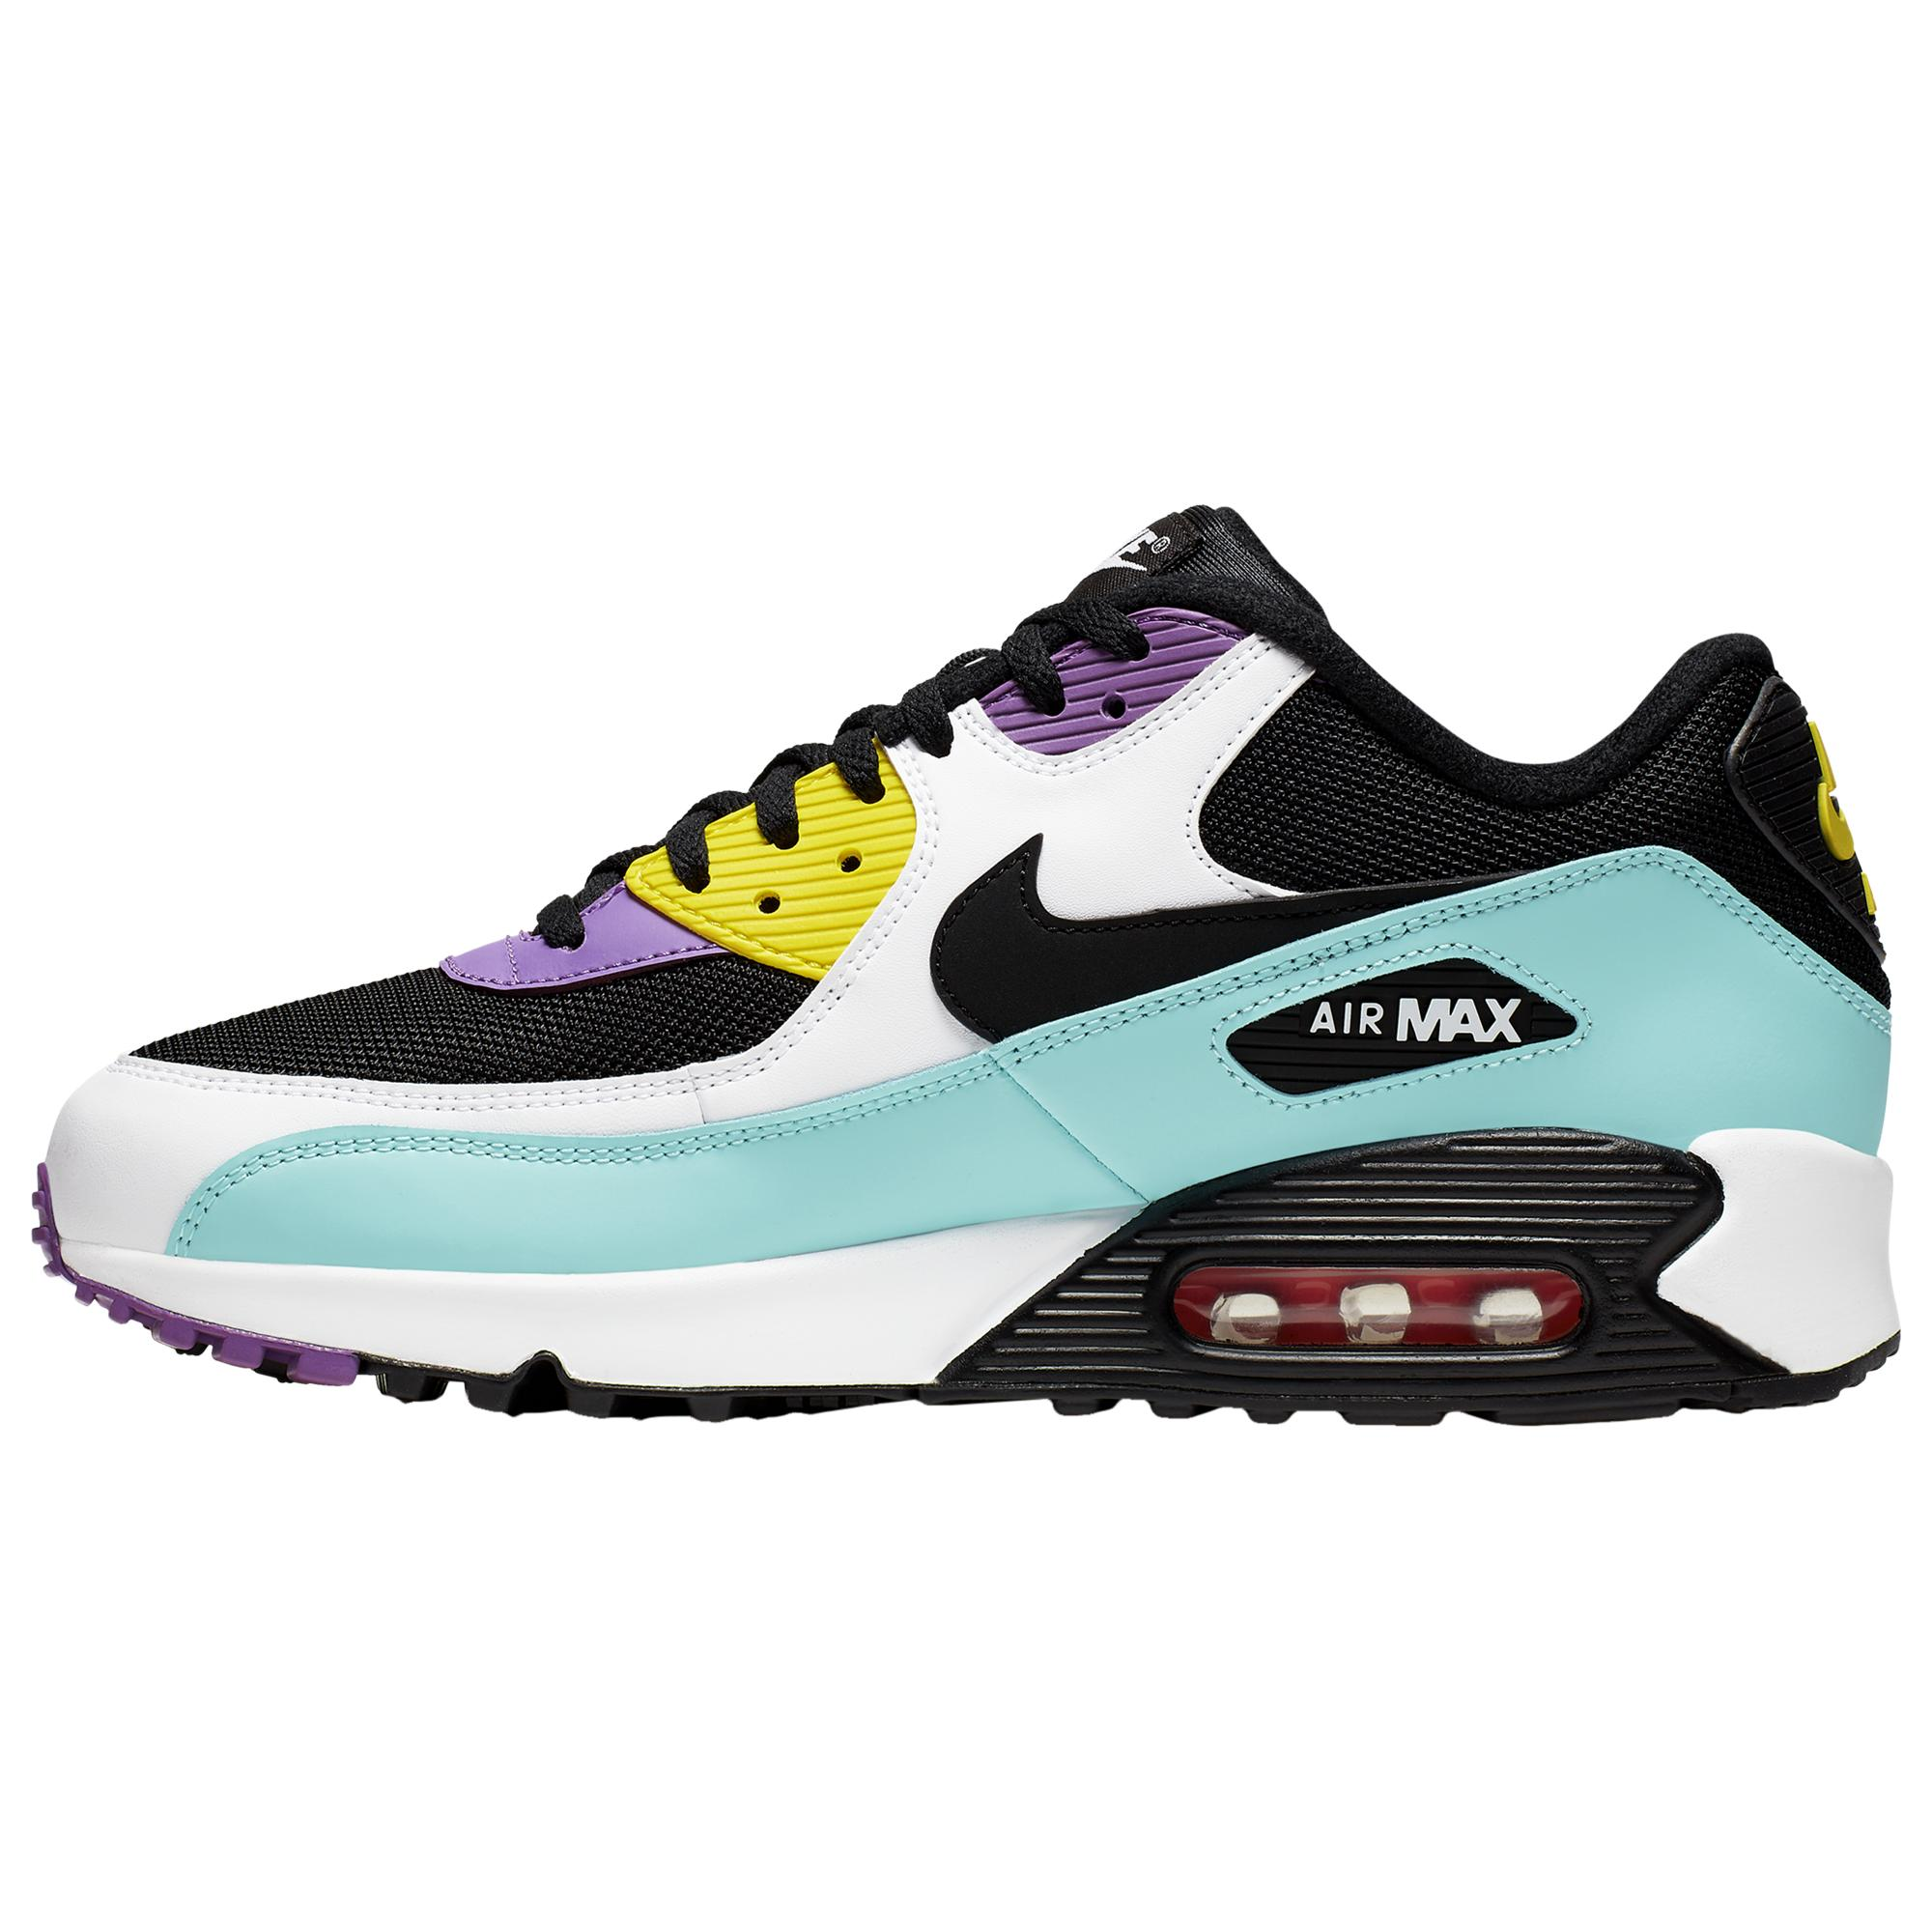 Nike Synthetic Air Max 90 - Running Shoes in Black/White/Bright ...